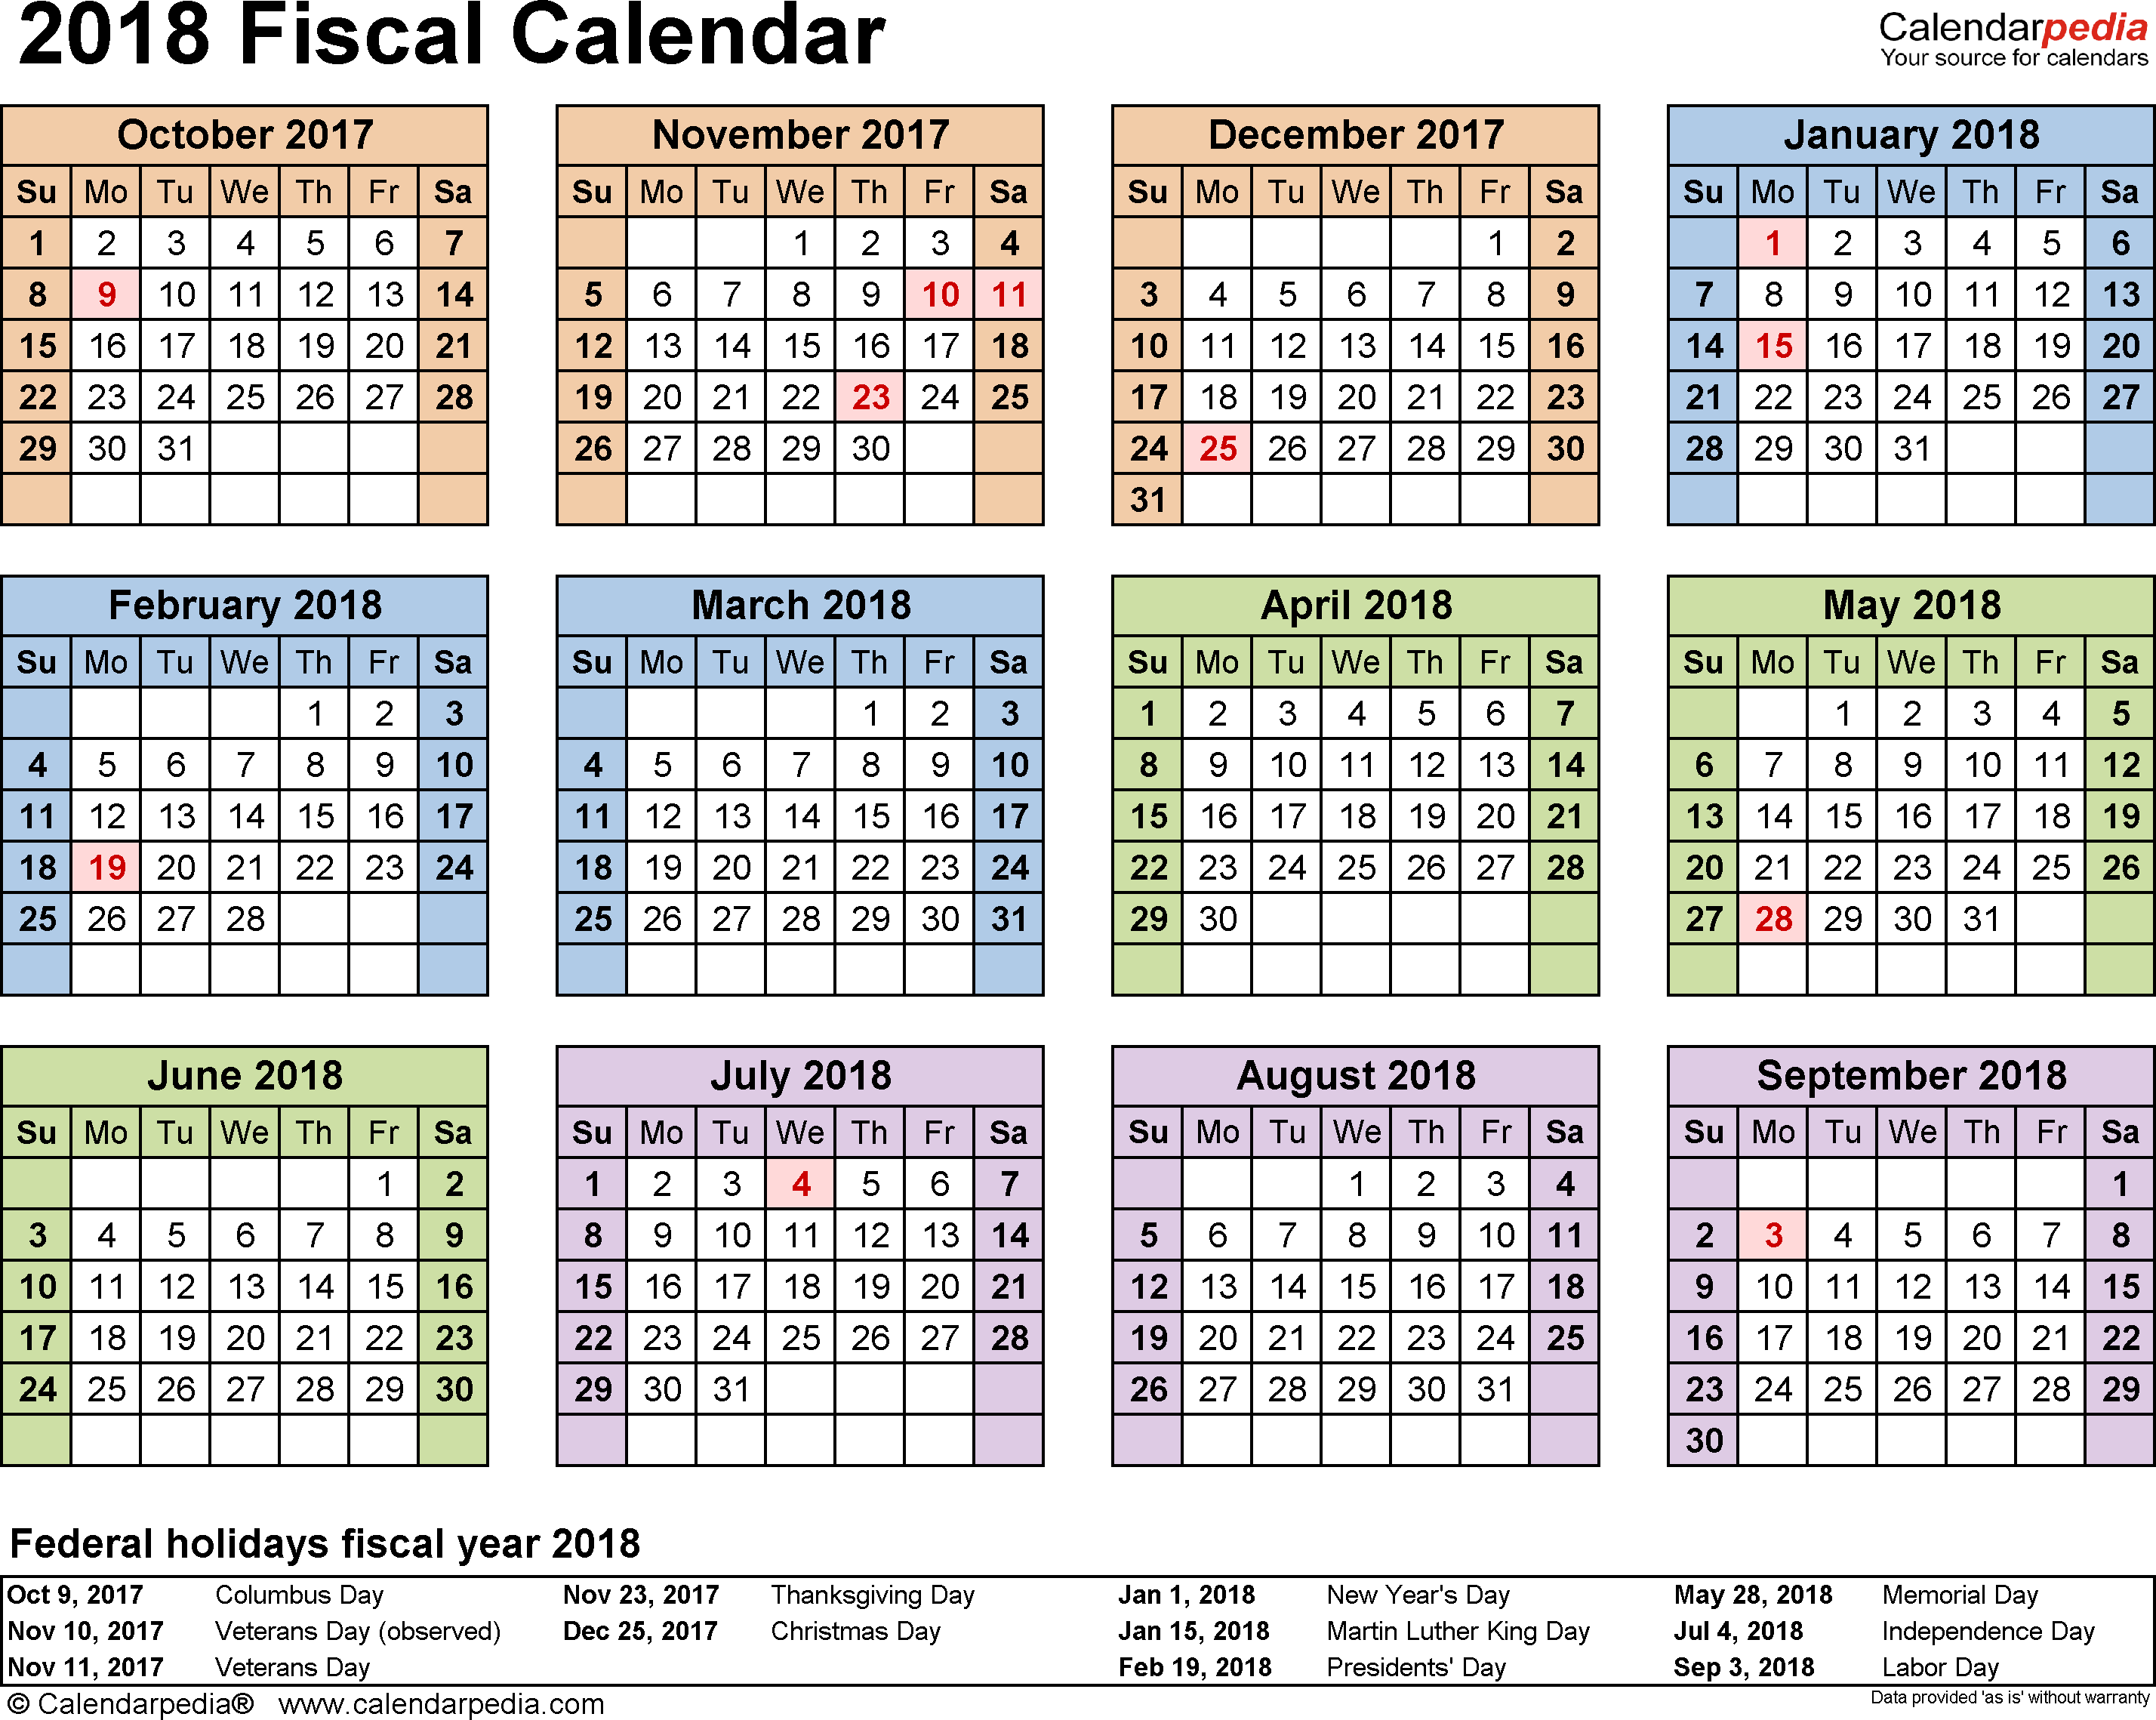 template 4 fiscal year calendar 2018 for pdf landscape orientation year at a